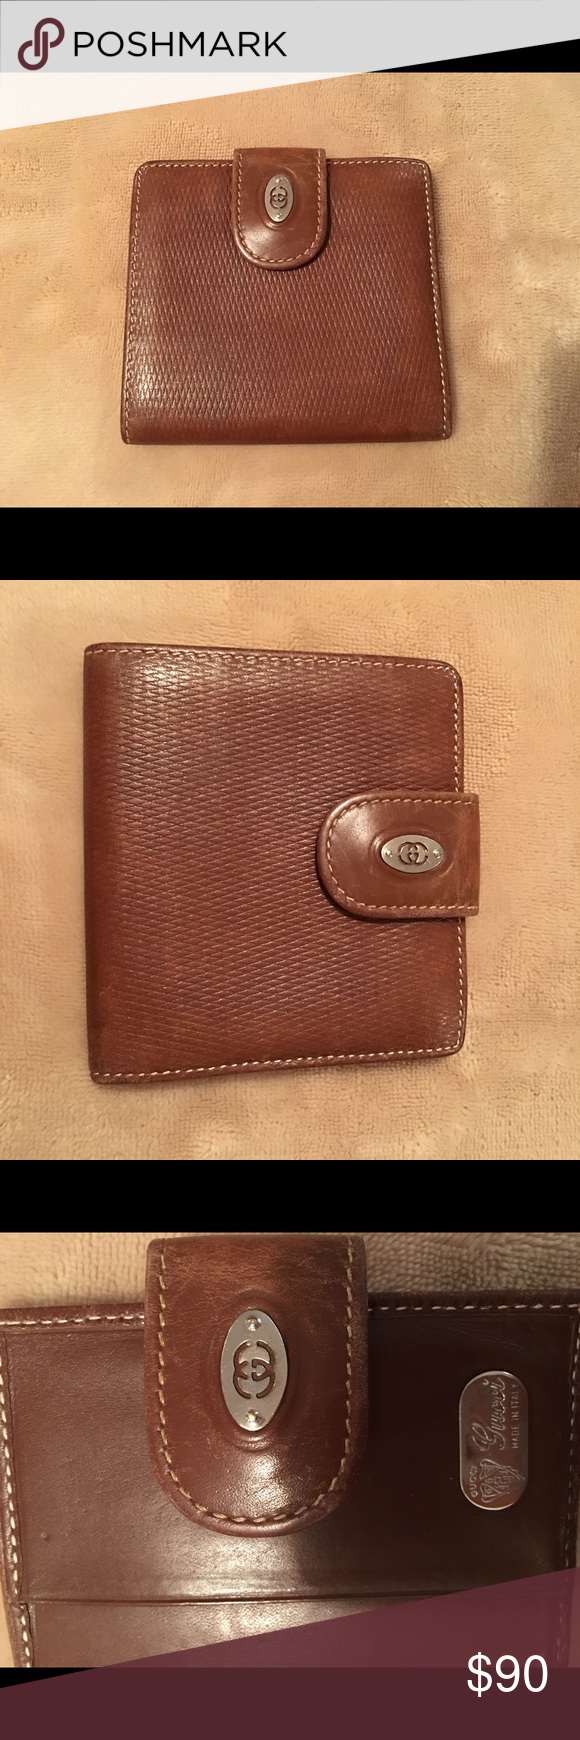 60d7c174aeb Authentic Vintage Gucci Wallet Vintage Brown leather Gucci wallet made in  Italy (has the Fiocchi